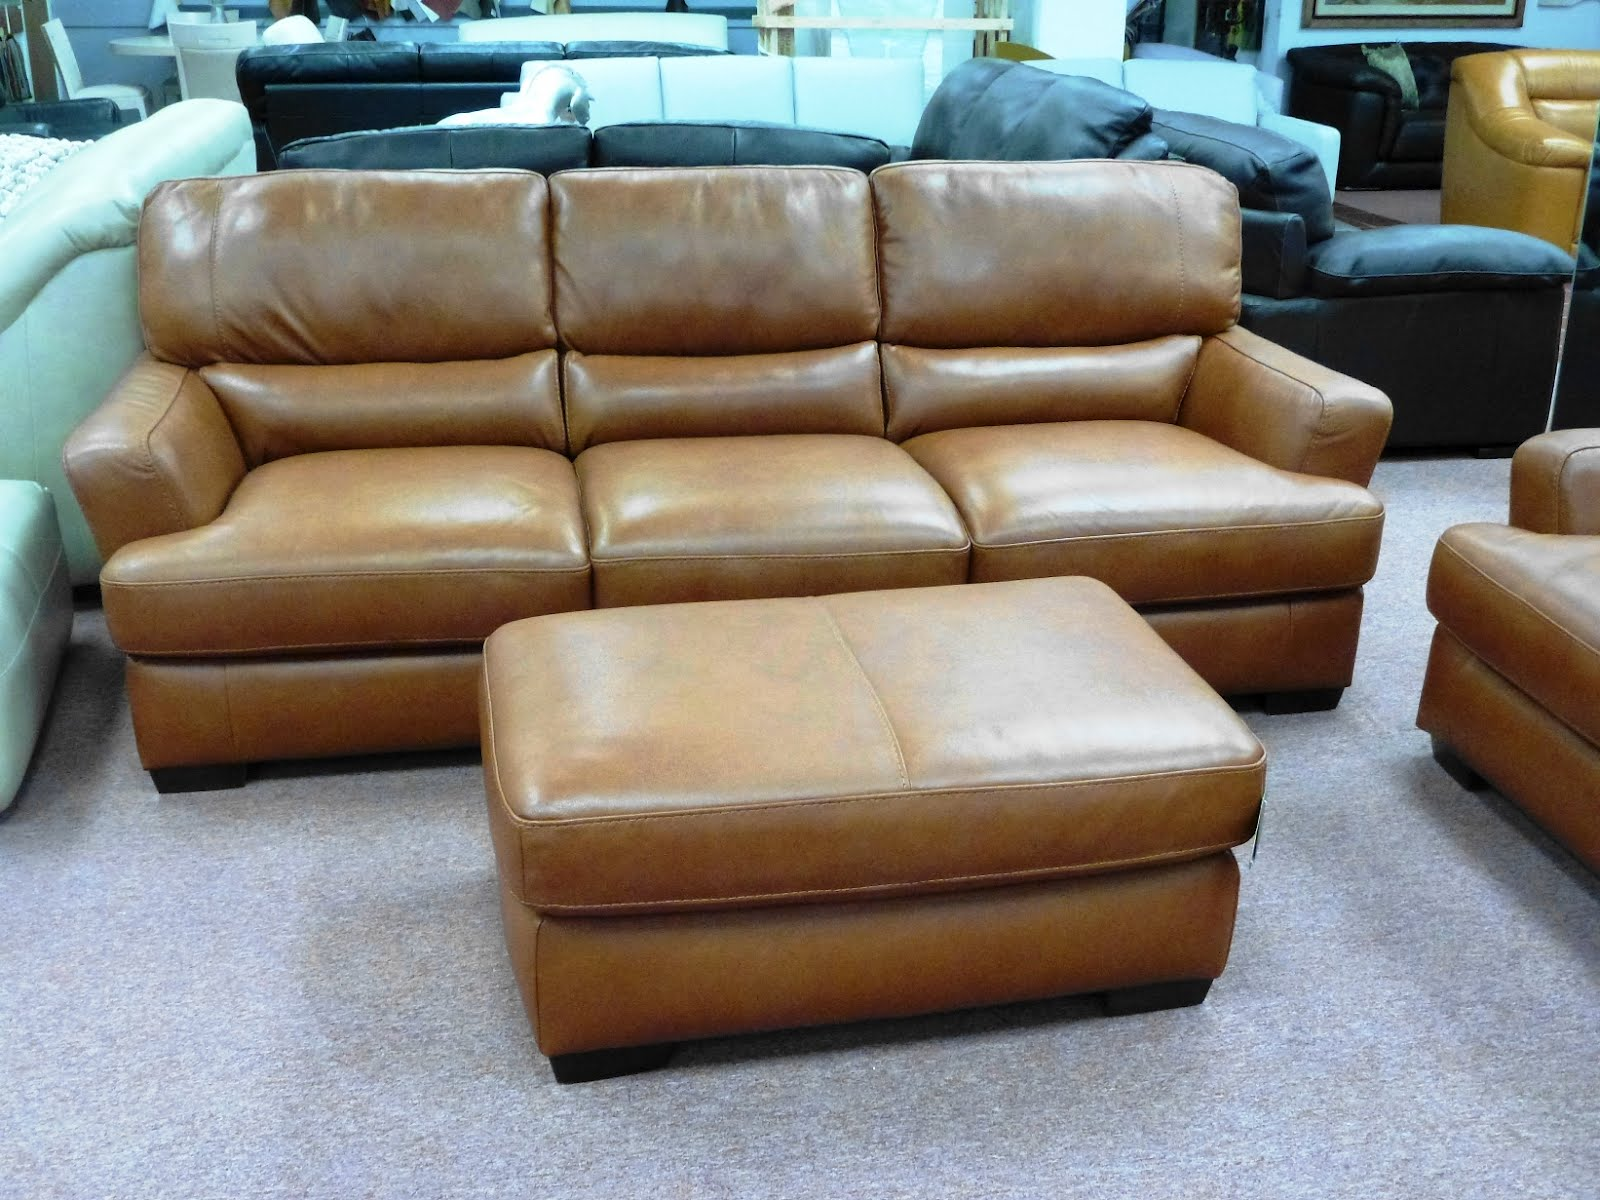 Greccio Leather Sofa Innovative Greccio Leather Sofa Natuzzi Editions Furniture Thesofa